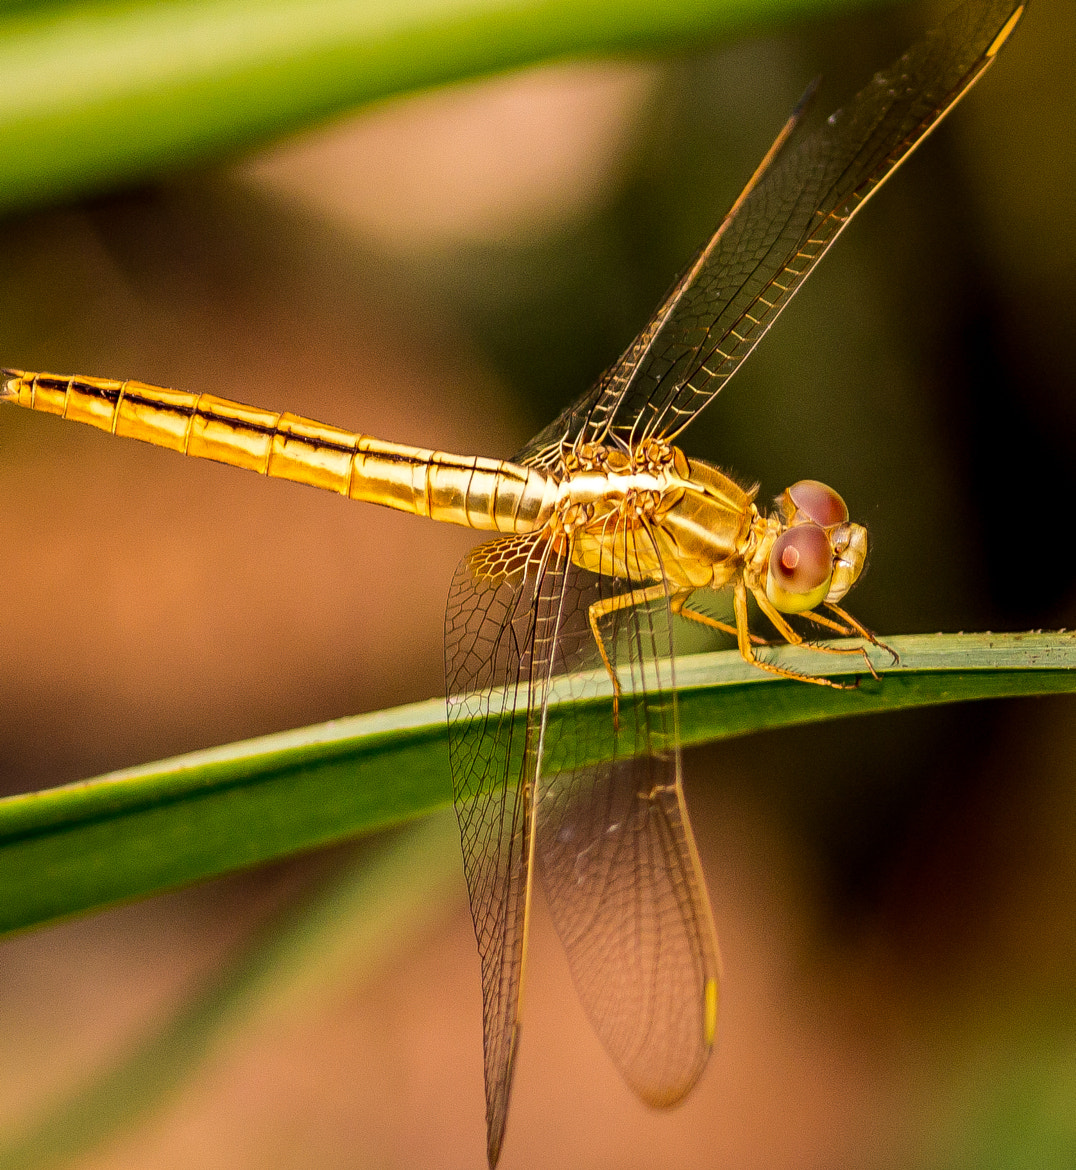 Photograph Golden Dragonfly 2 by Richard Nurse on 500px